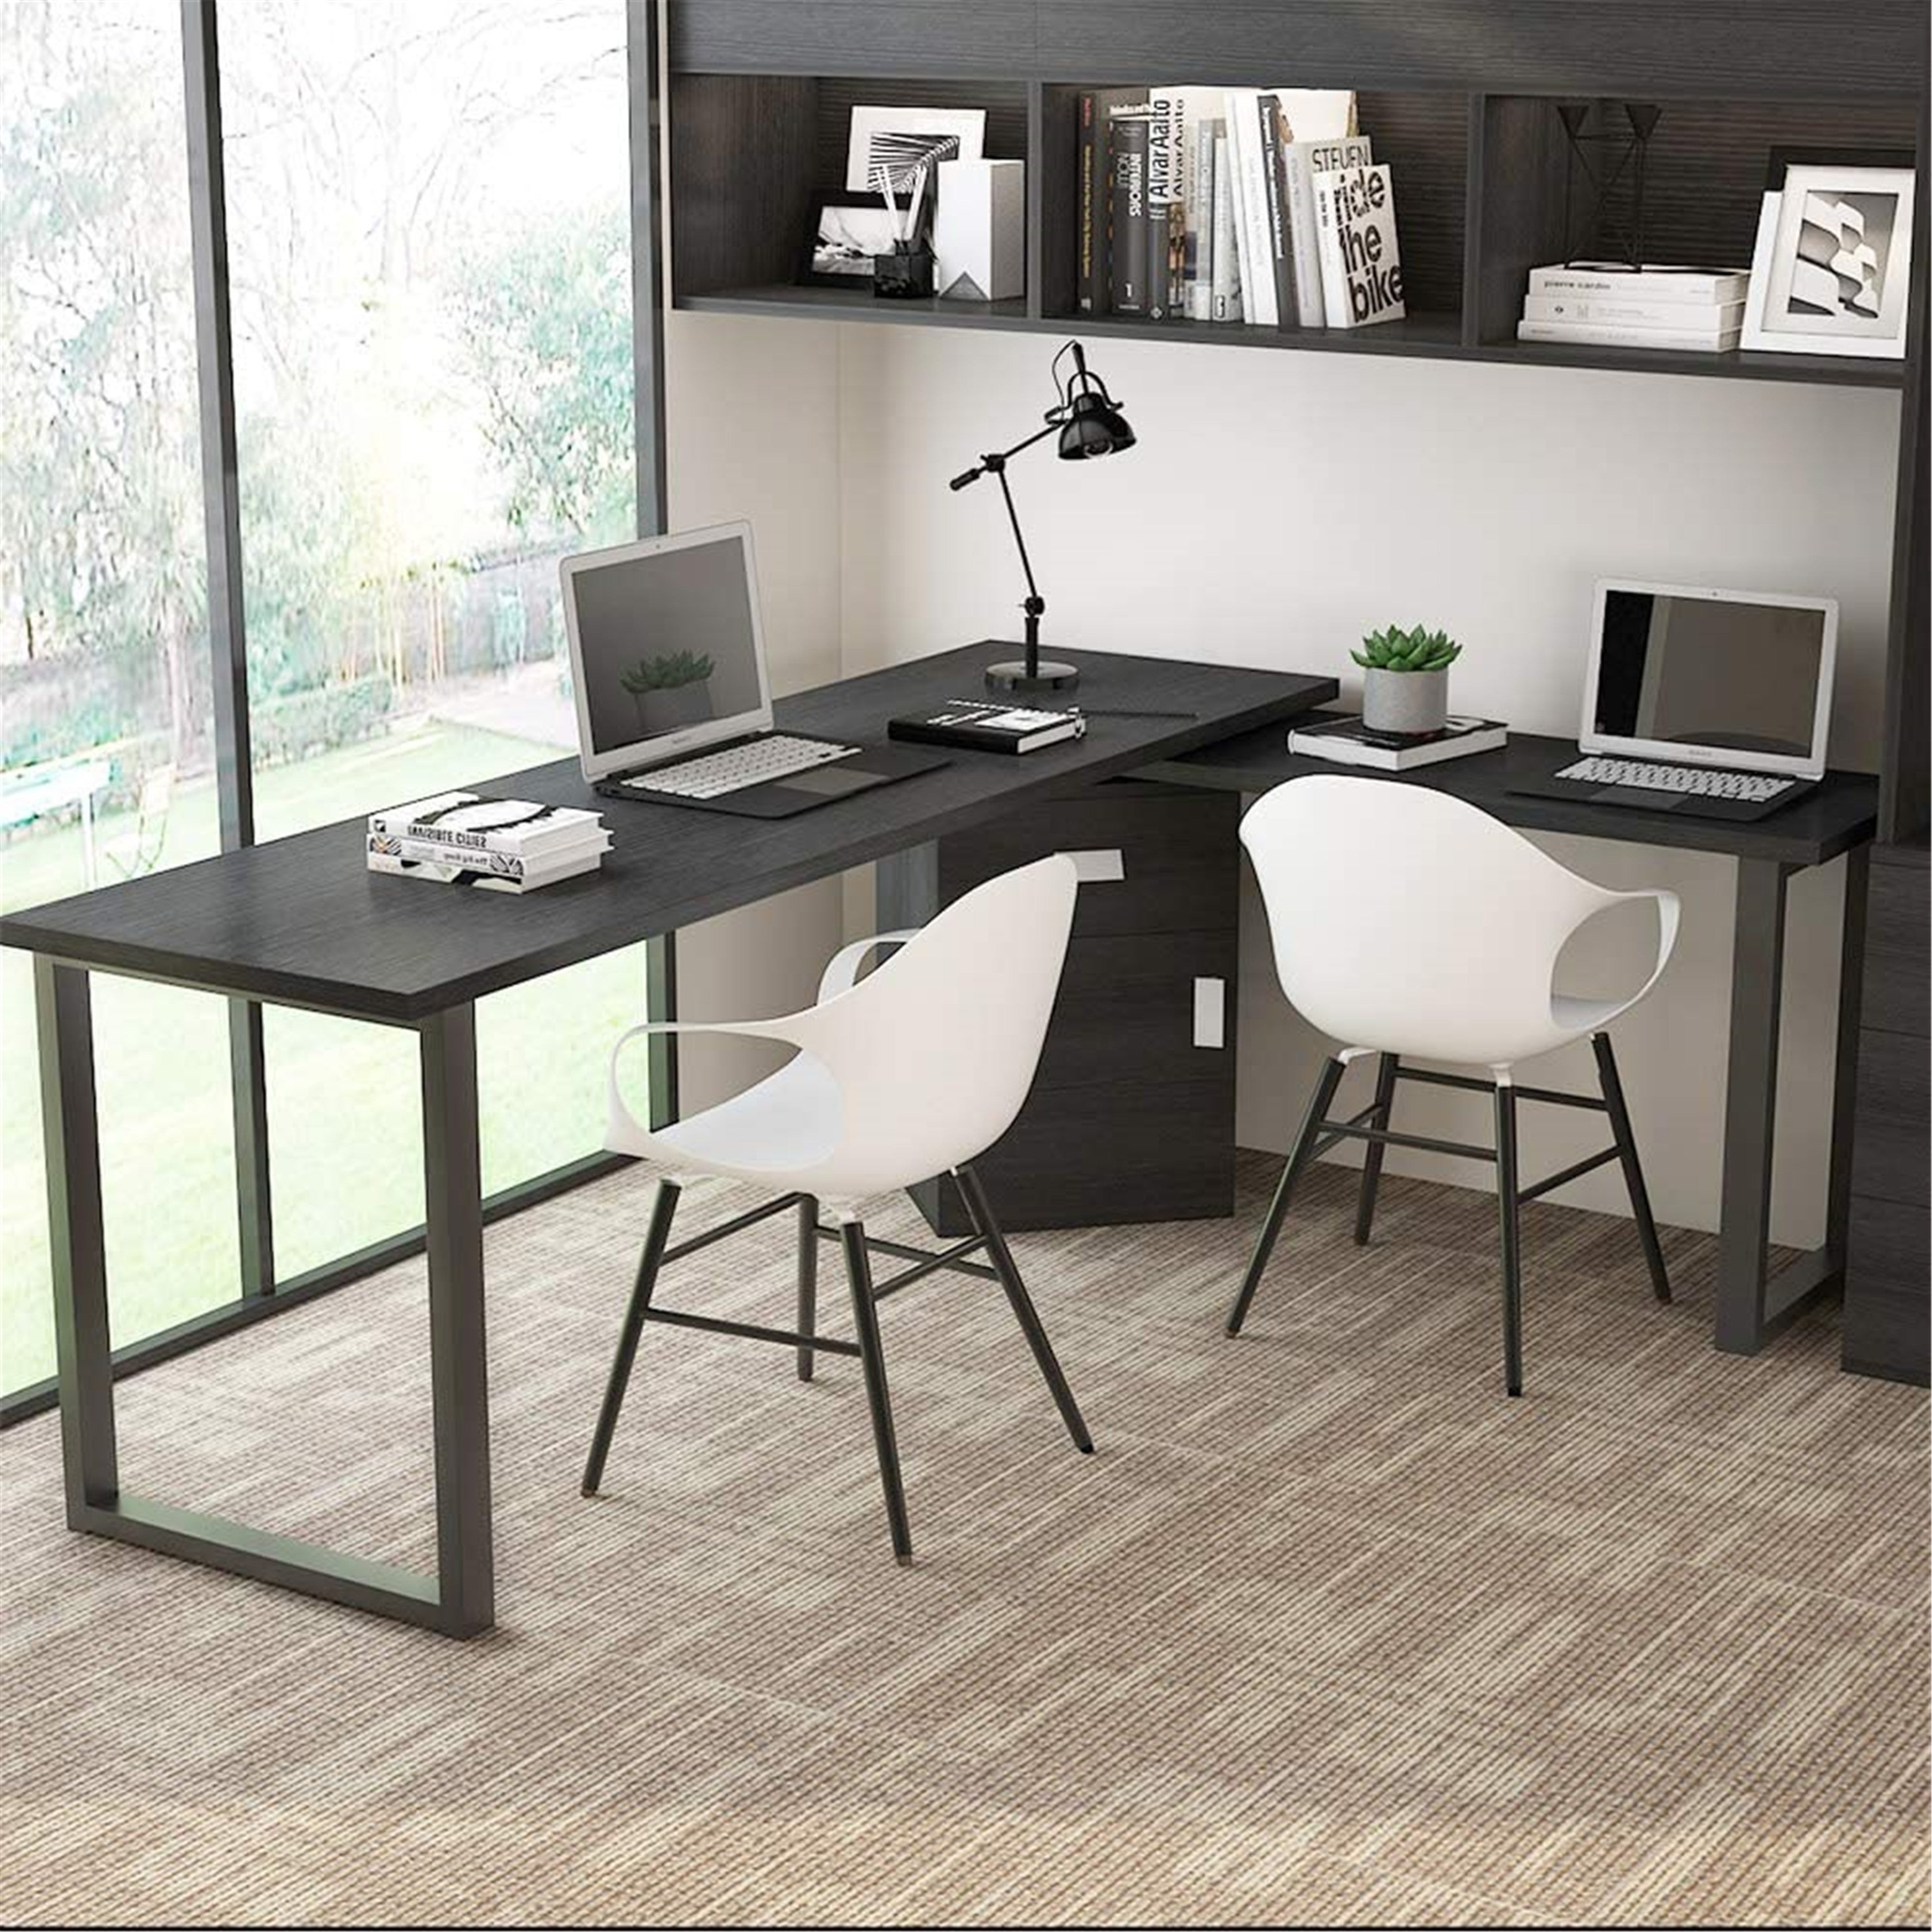 55 Inches Rotating L Shaped Computer Desk With File Cabinet Overstock 31833462